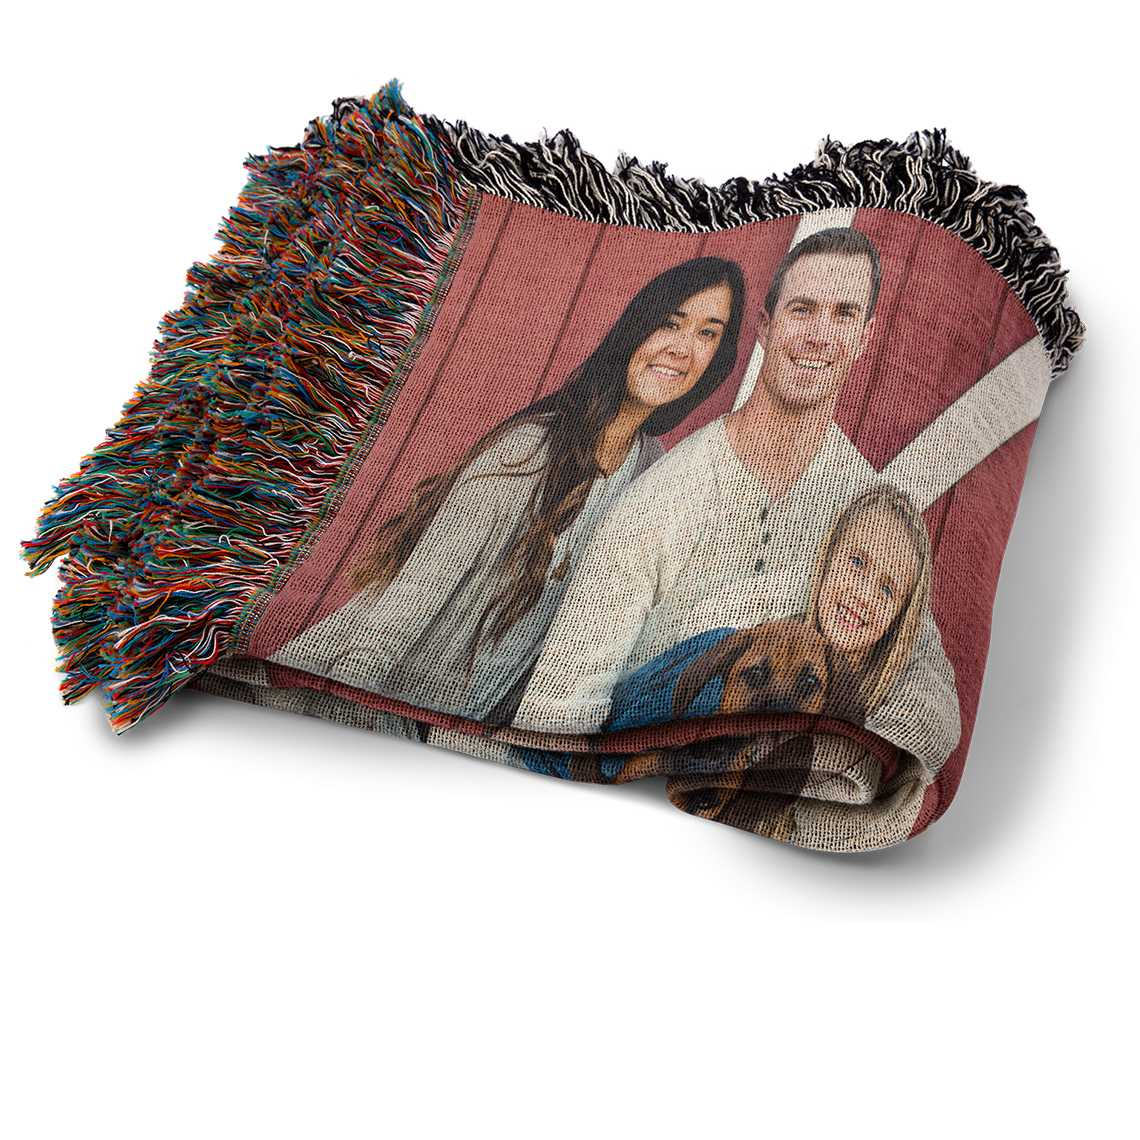 Personalized 50x60 Woven Photo Blankets